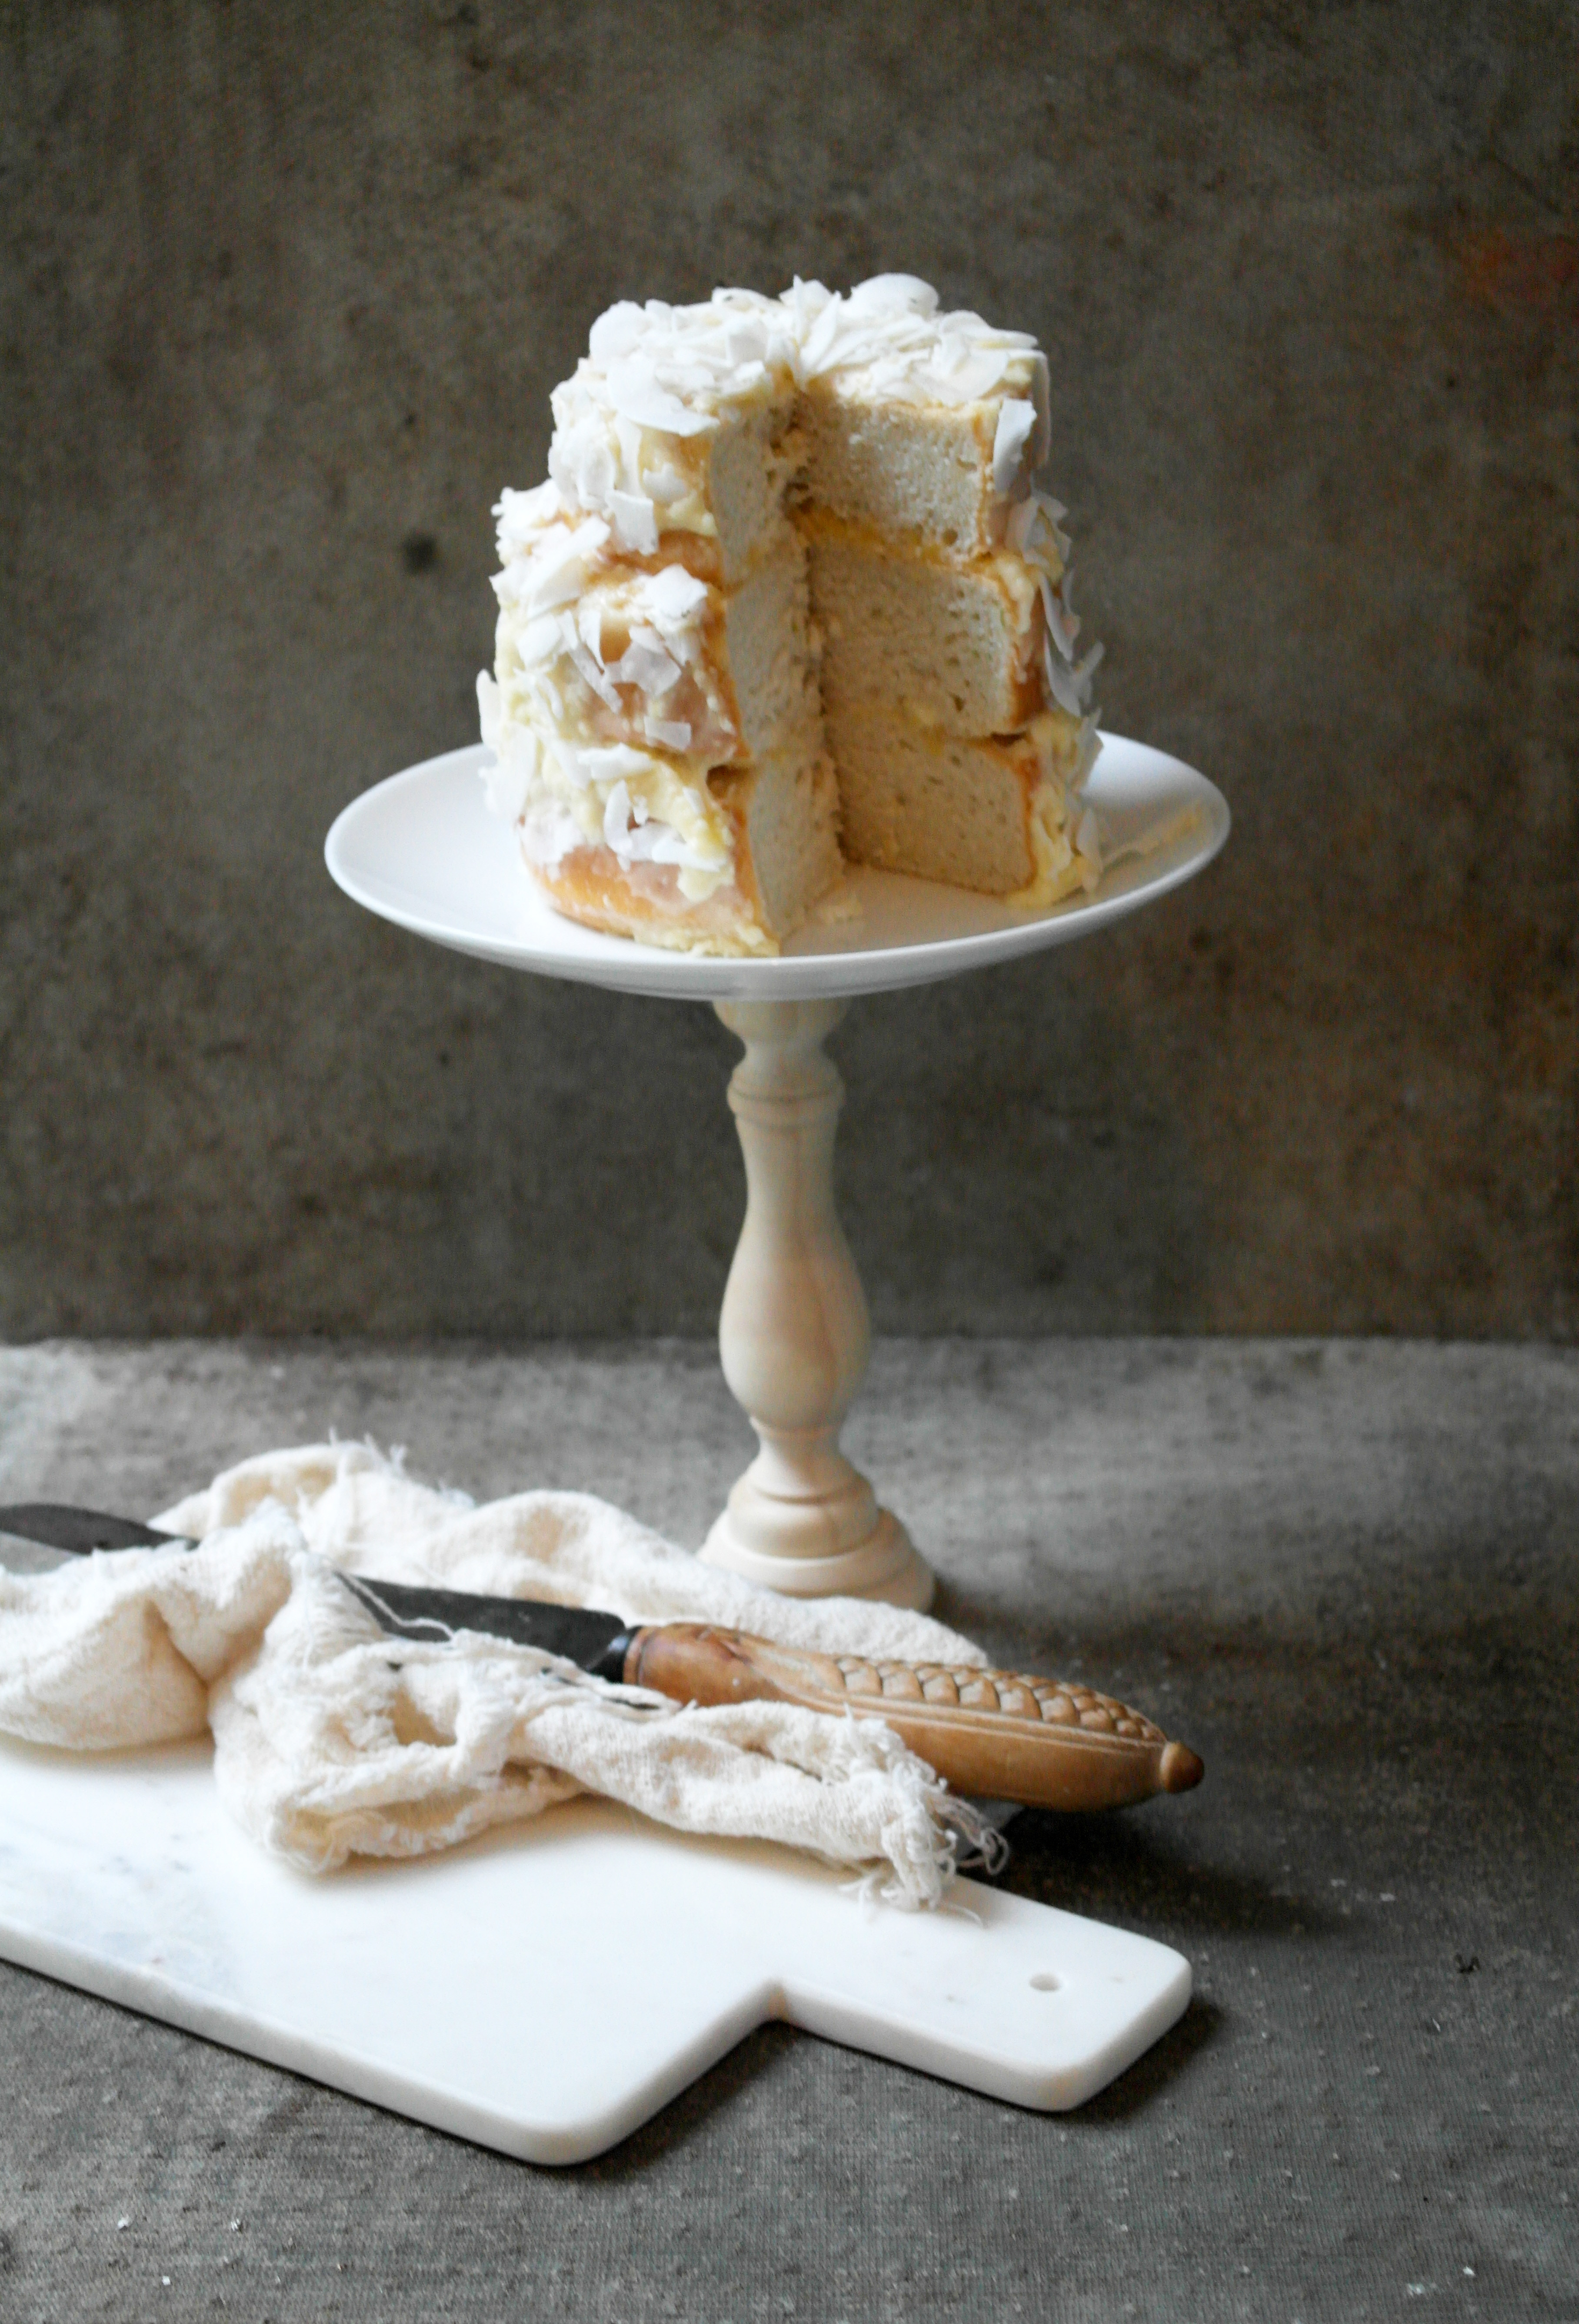 Best ideas about DIY Wood Cake Stand . Save or Pin DIY Wooden Cake Stand – Design Sponge Now.